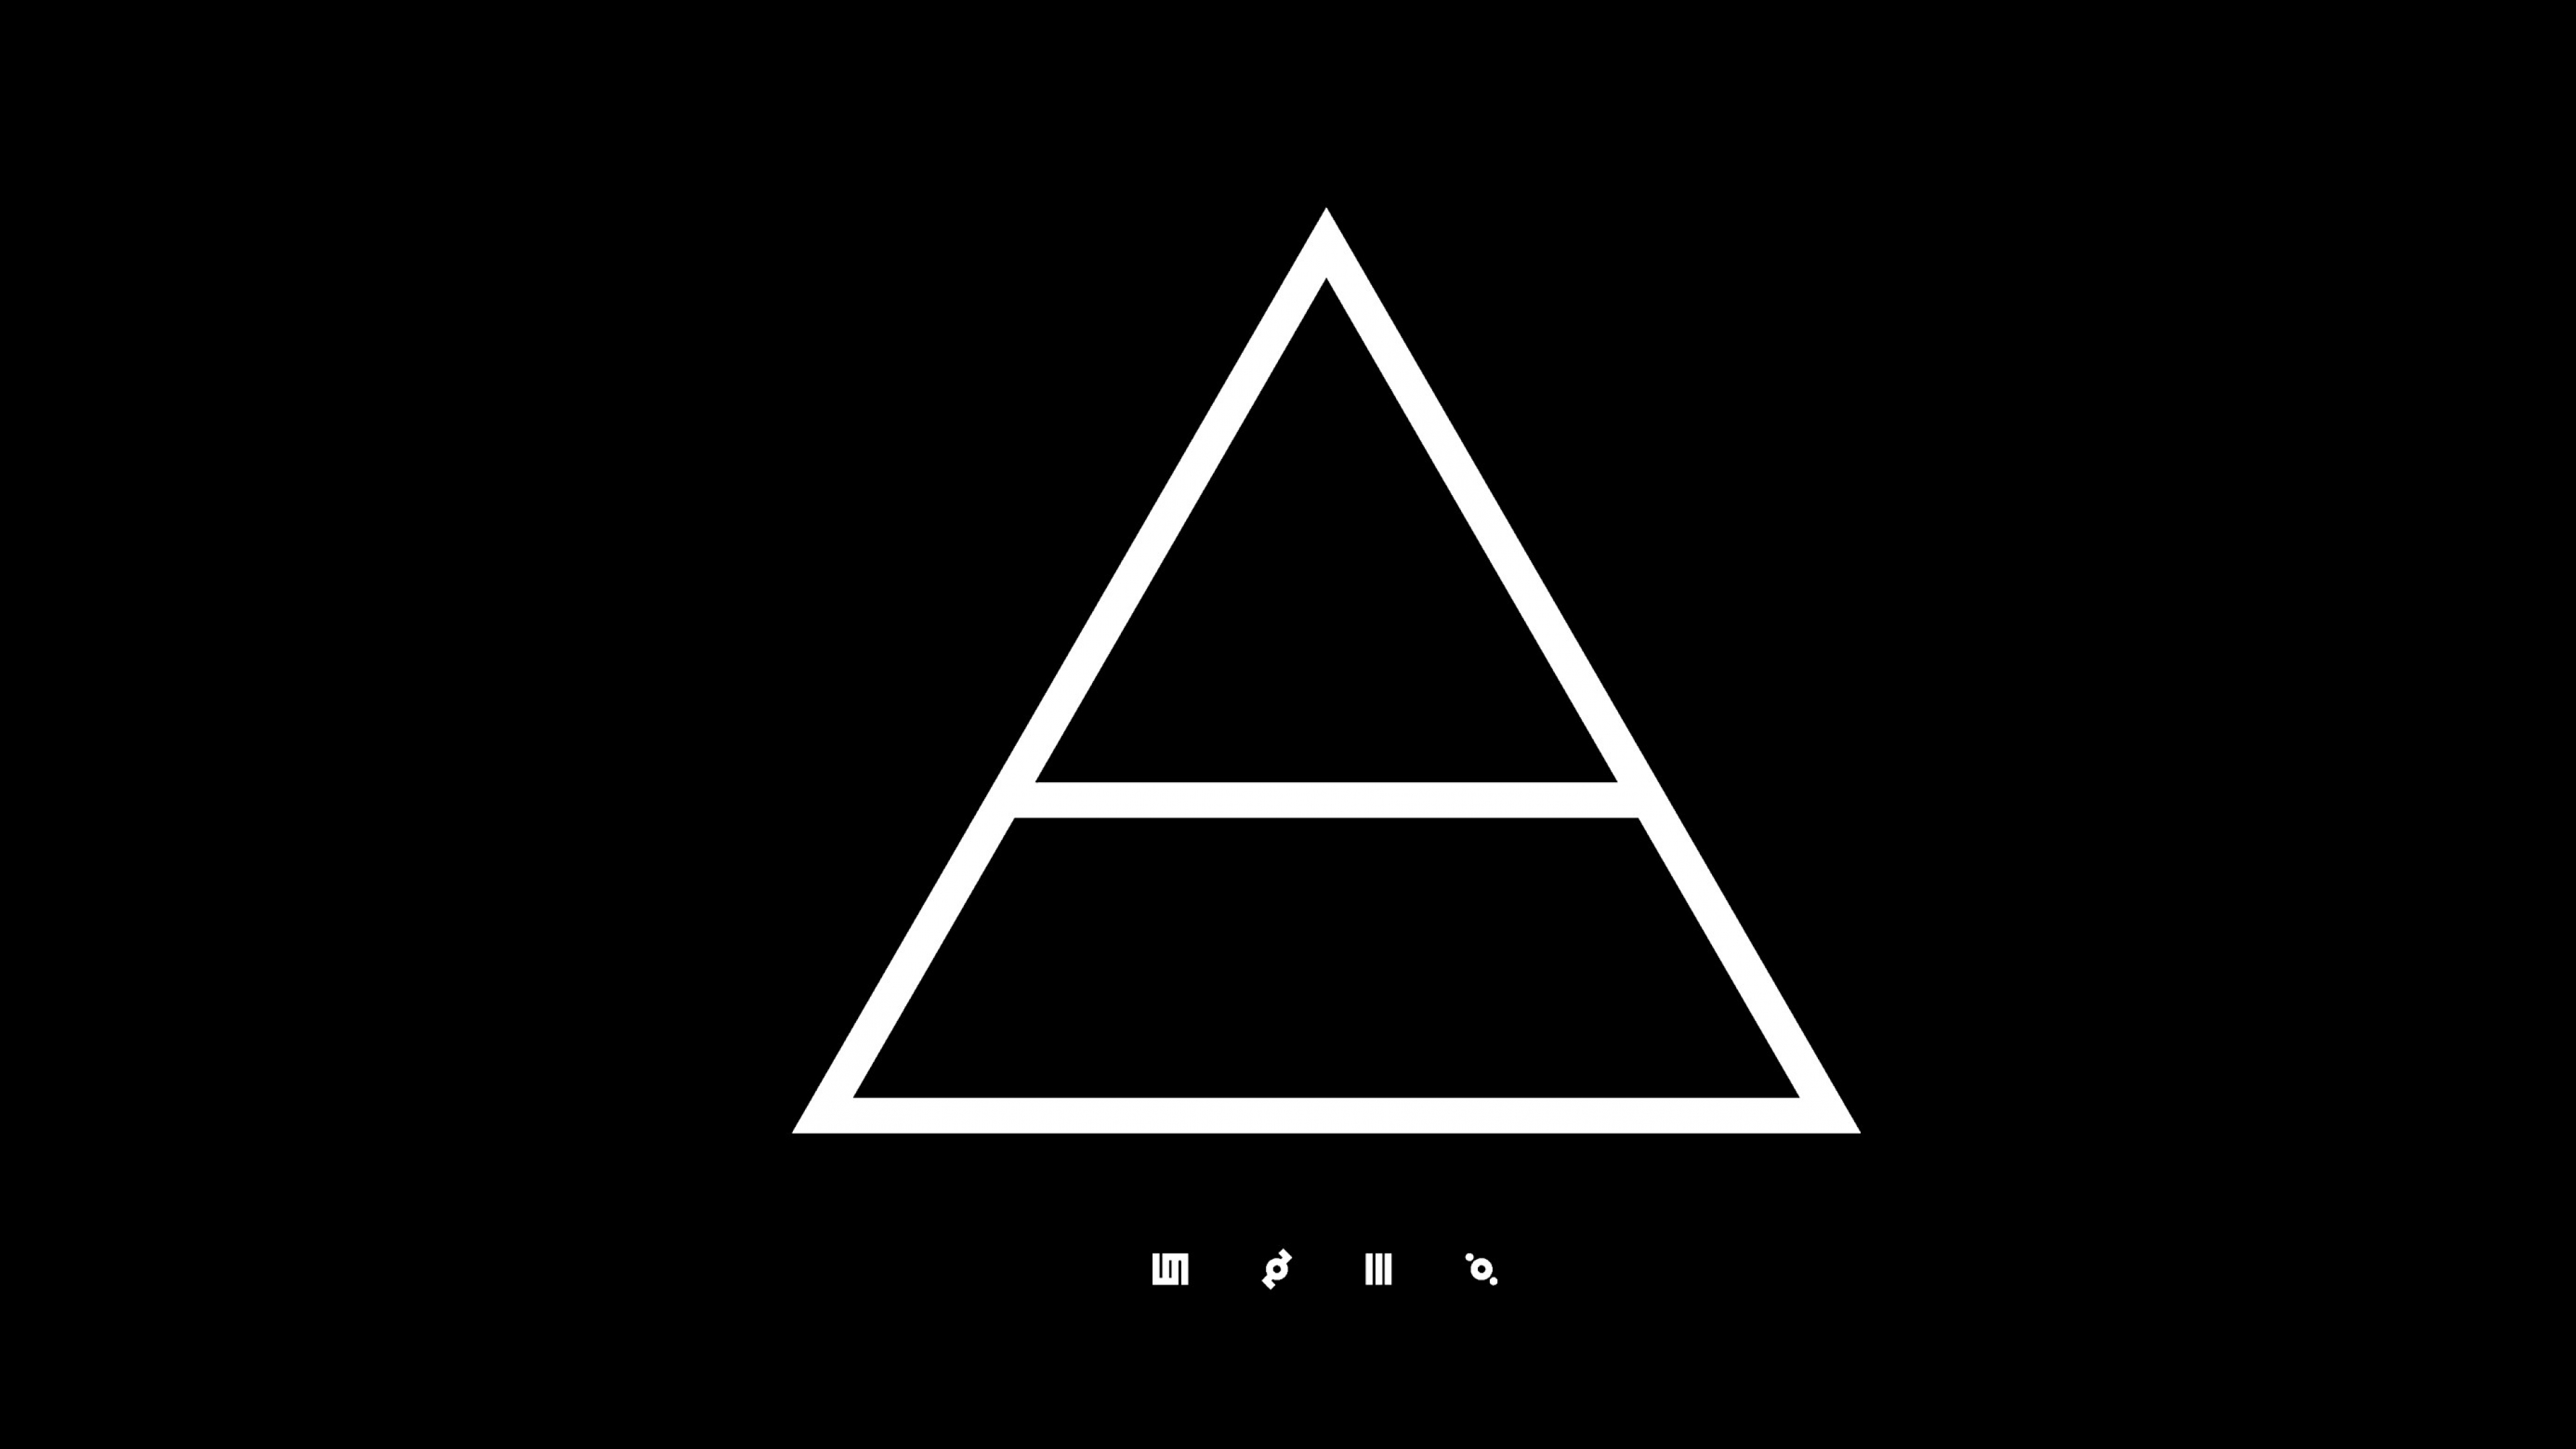 41 Thirty Seconds To Mars Hd Wallpapers Background Images